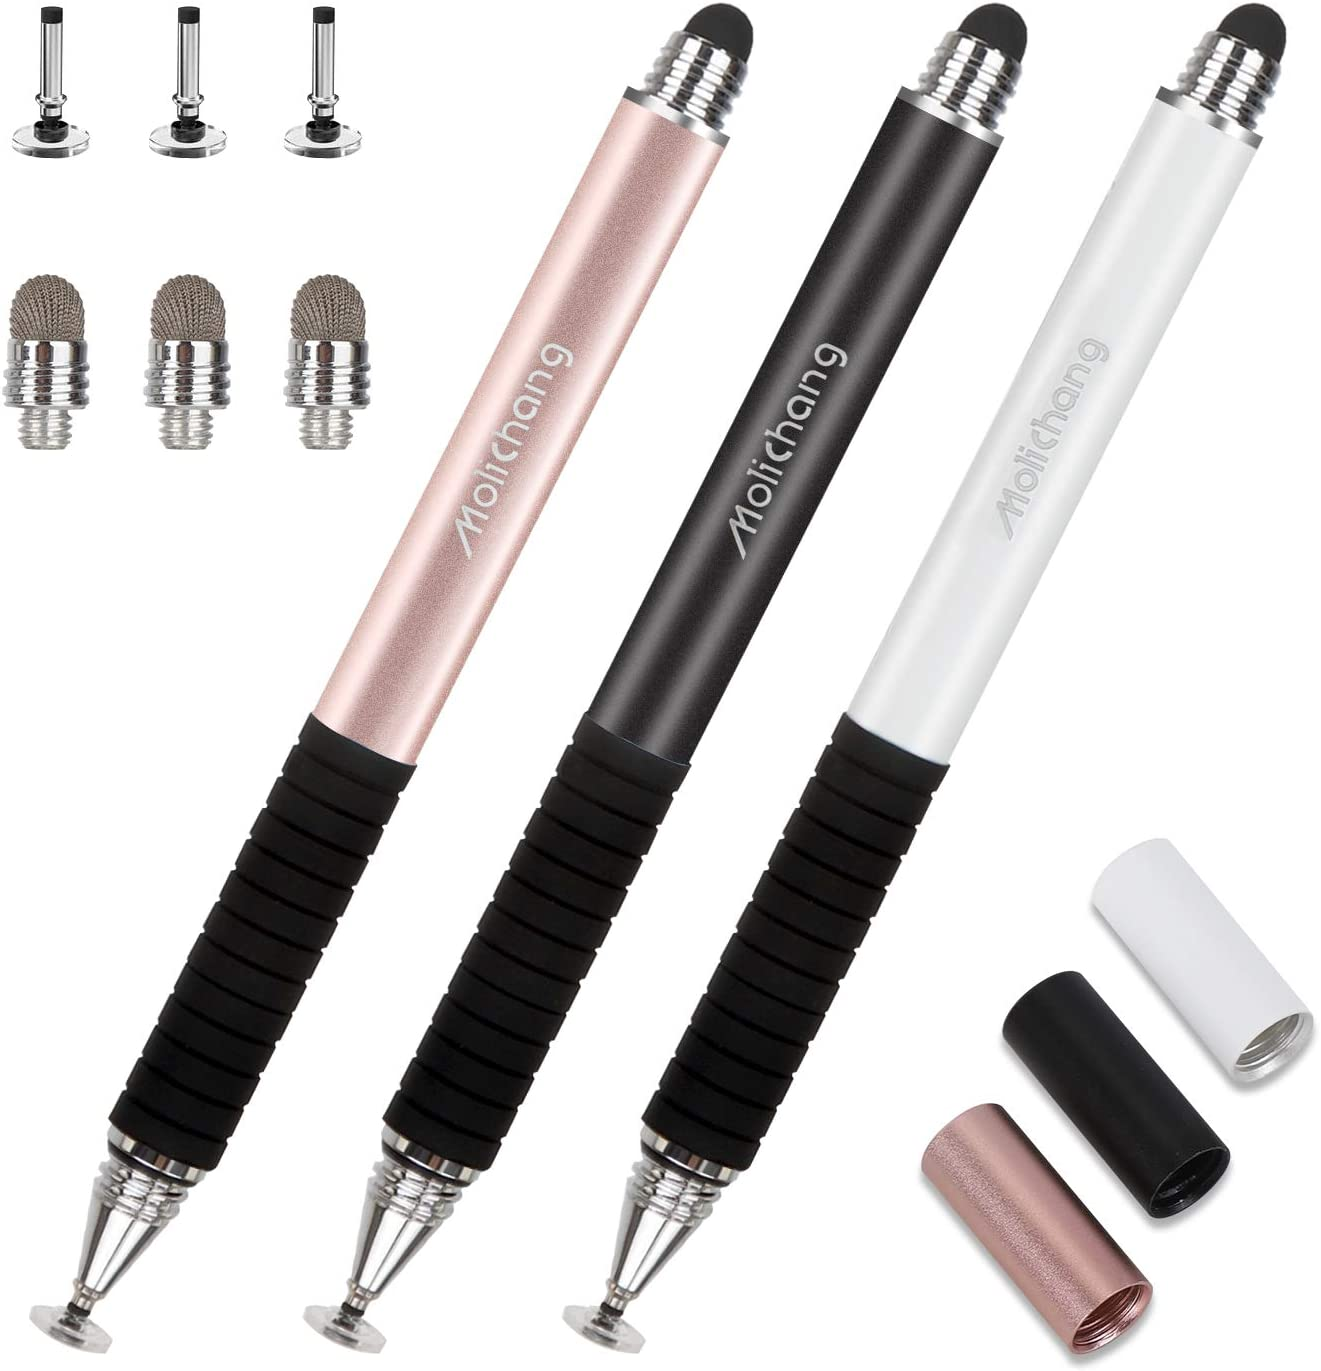 Capacitive Stylus Pens, 2 in 1 Universal Disc Stylist Pens for All Capacitive Touch Screens Cell Phones, iPad, Tablet, Laptops with 6 Replacement Tips by Molichang (3 Pcs) (Black/White/Rose)